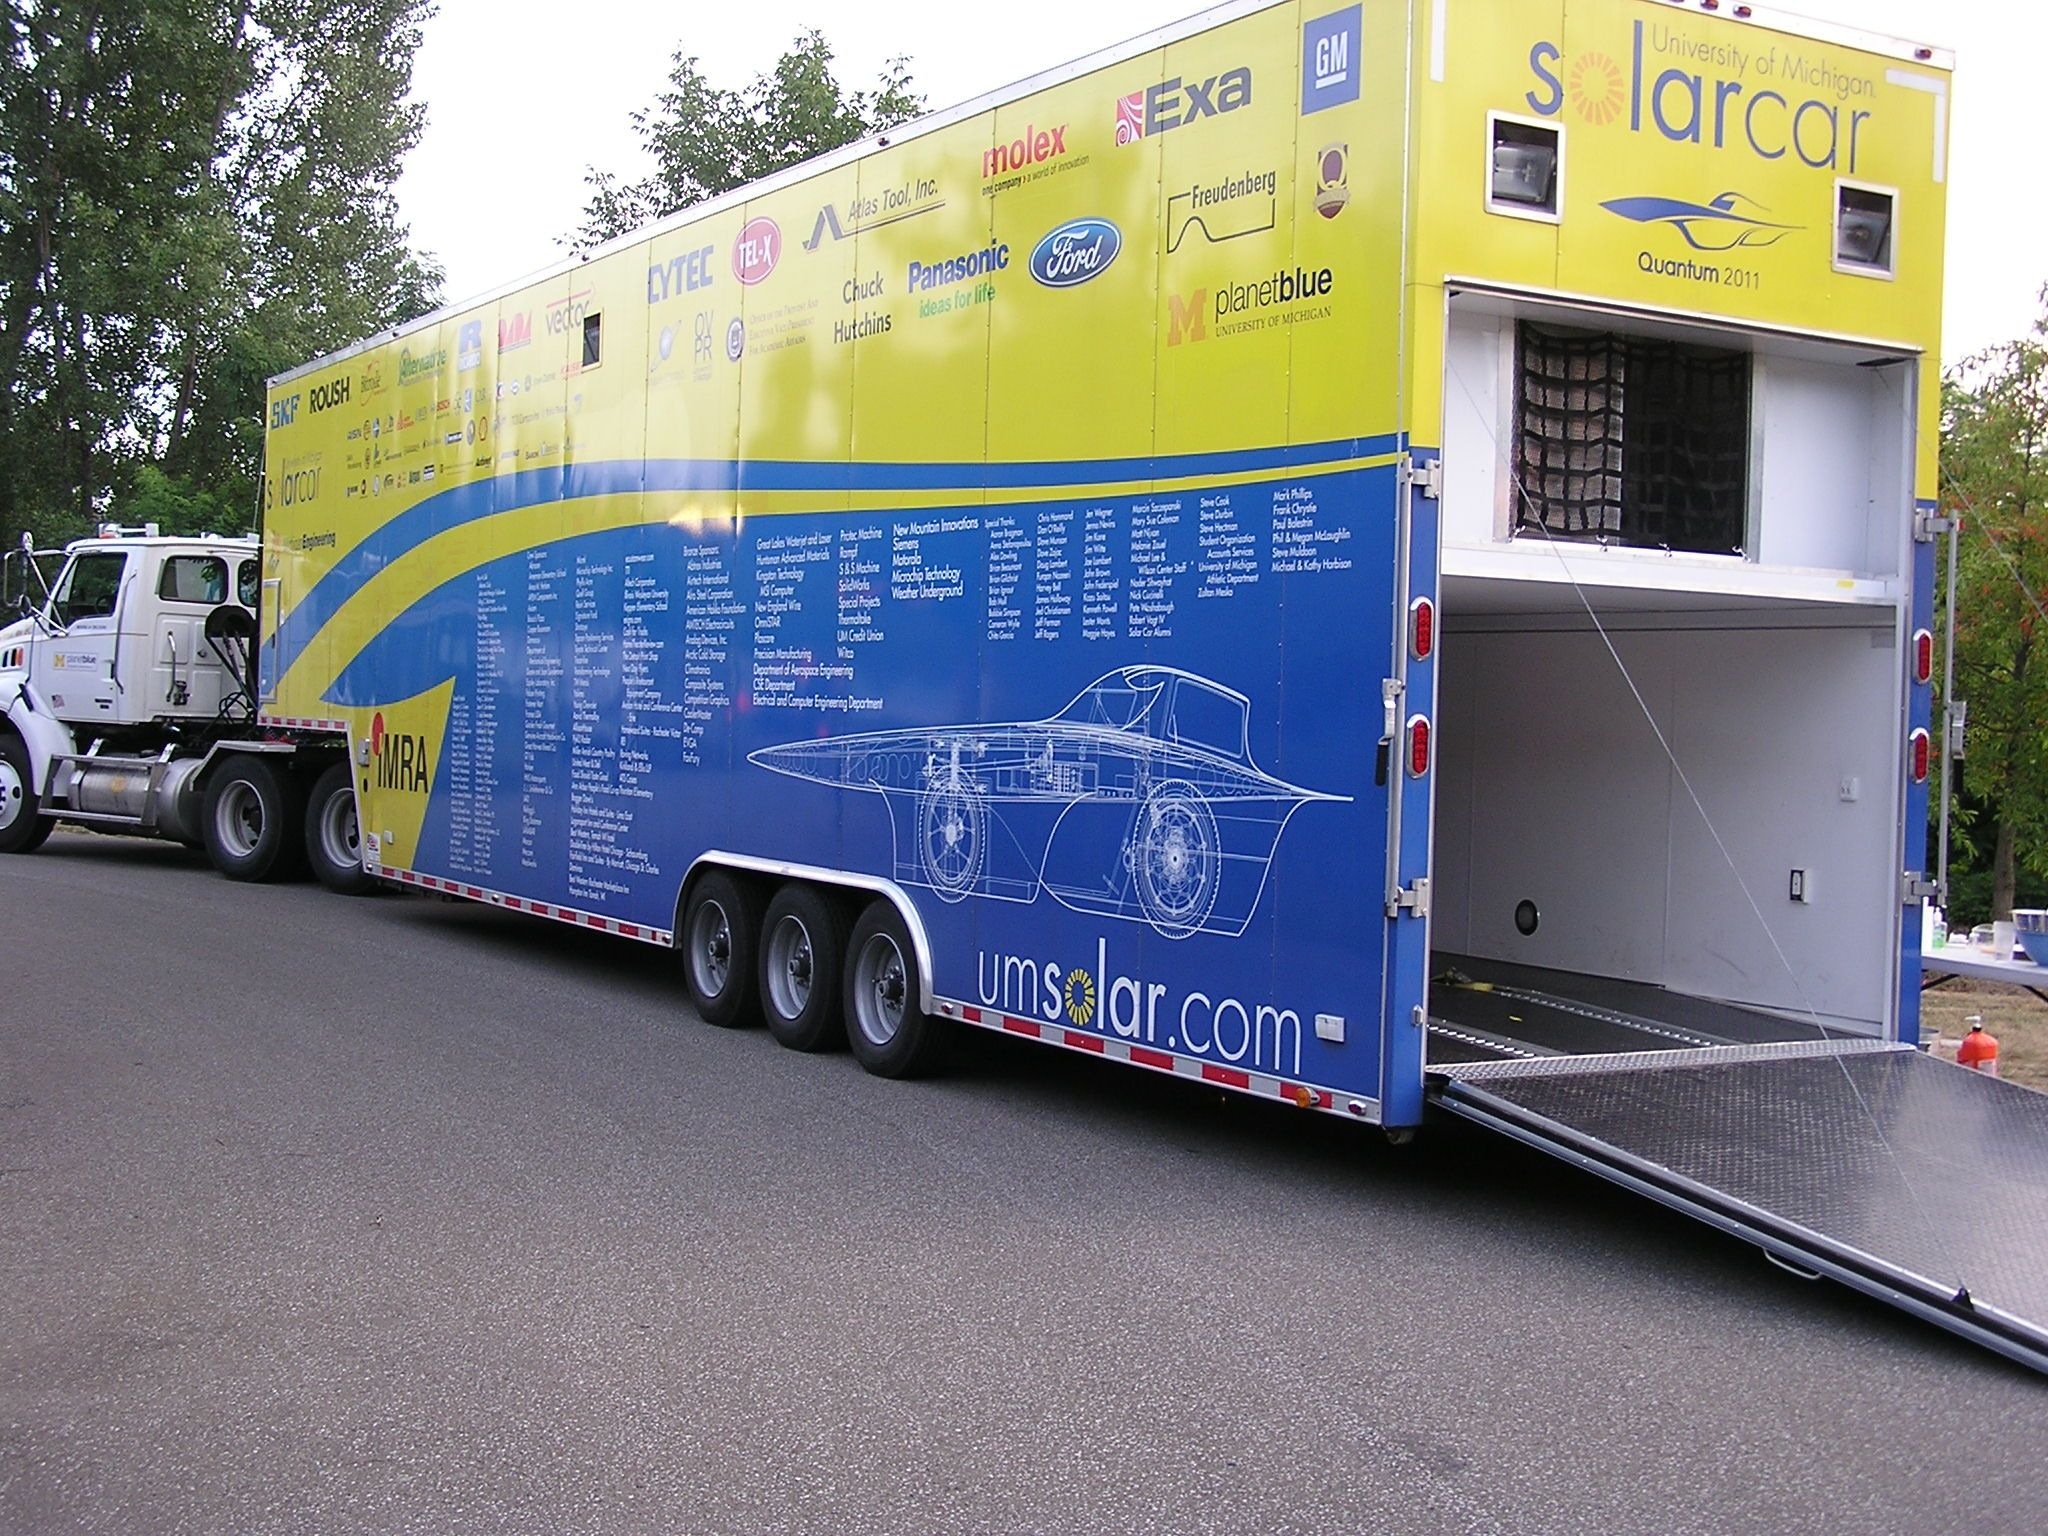 The University Of Michigan Solar Car Team Stopped In Erie Pa Over